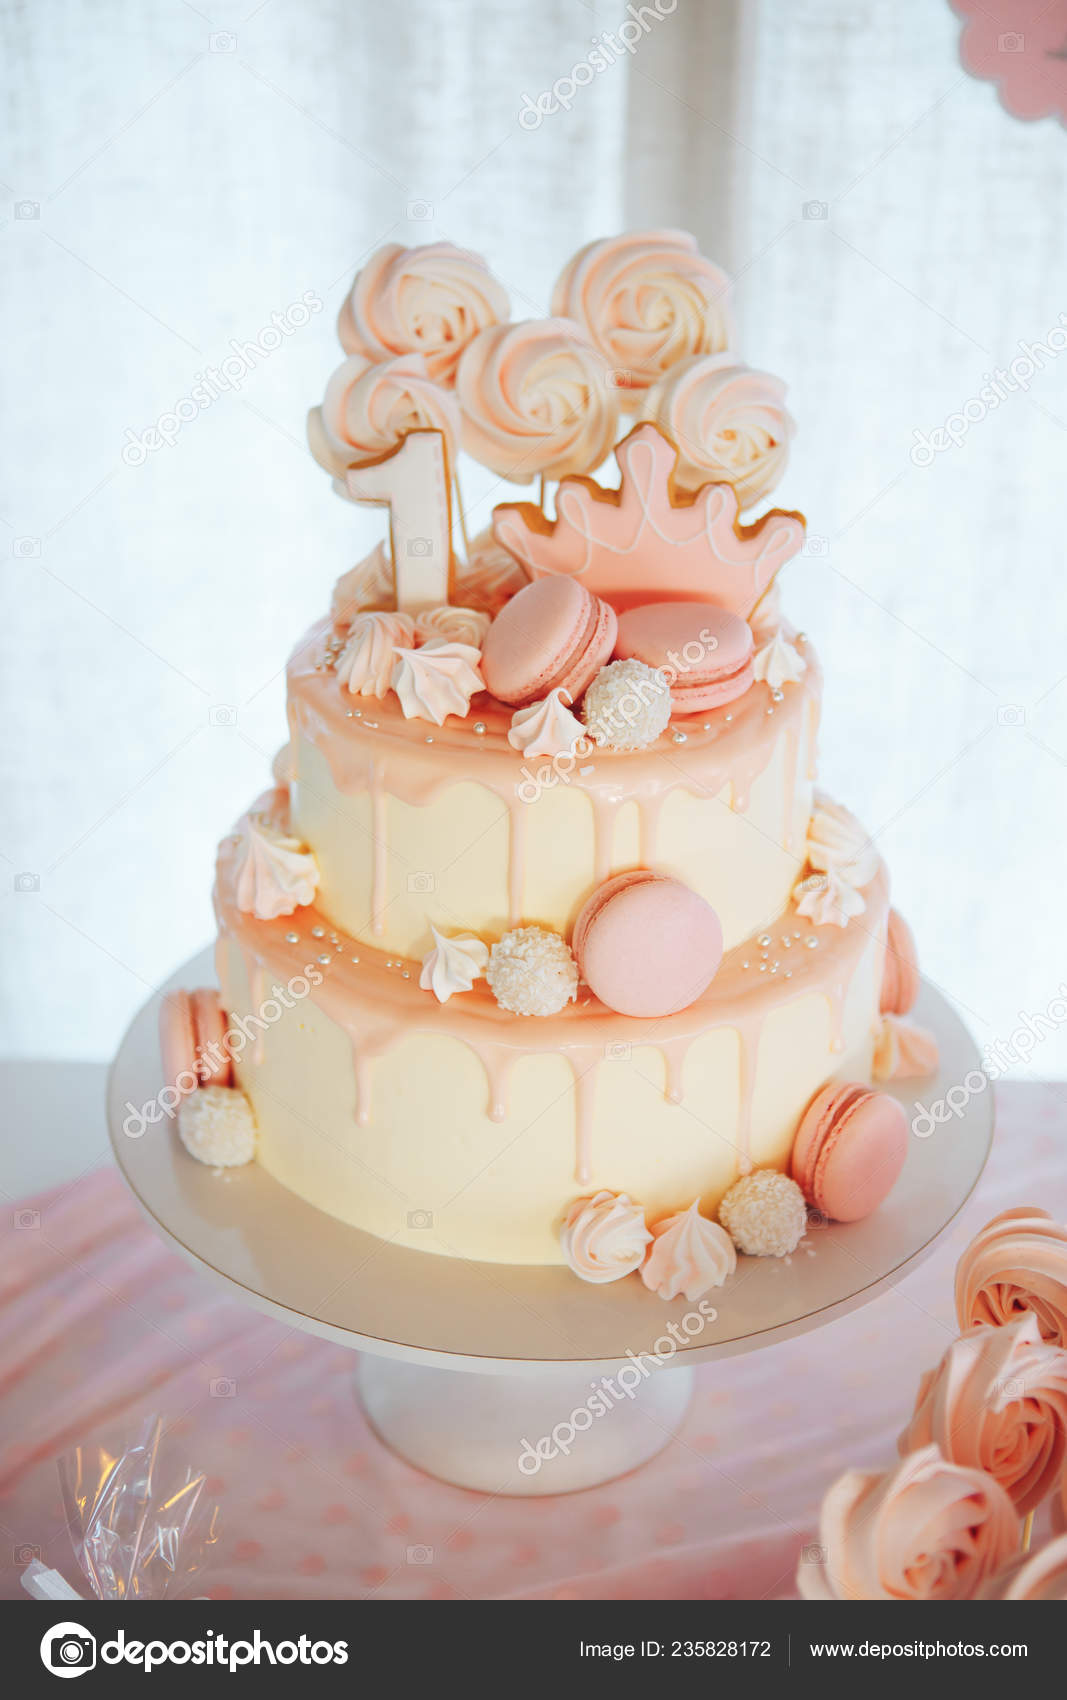 Phenomenal Cake For First Birthday Cake Decorated Macaroons Homemade Funny Birthday Cards Online Sheoxdamsfinfo